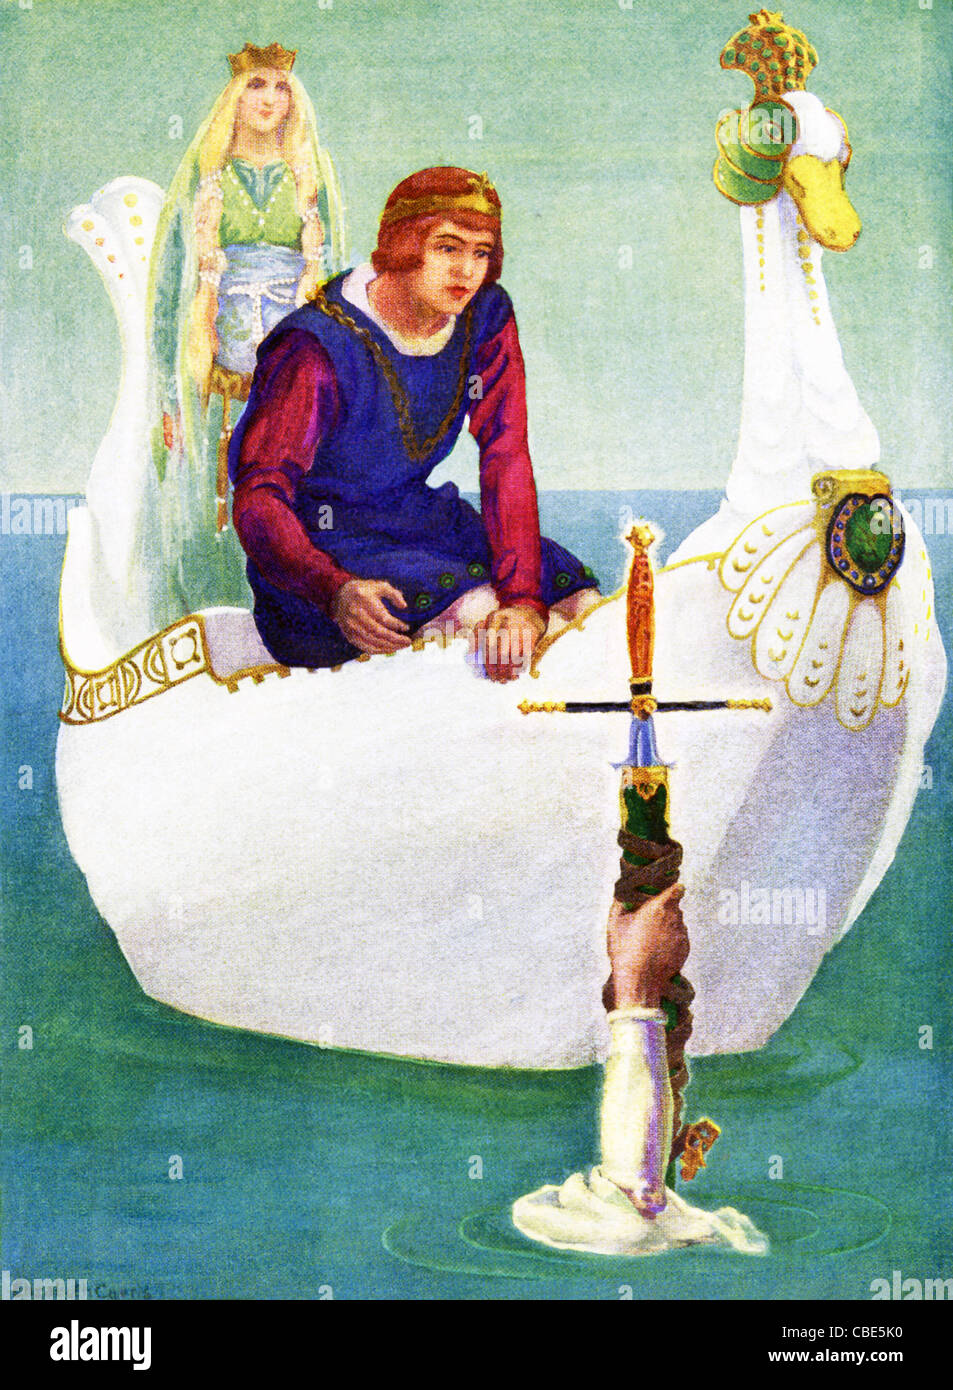 Legend said that King Arthur of Britain had his sword, known as Excalibur,  given to him by the Lady of the Lake. - Stock Image